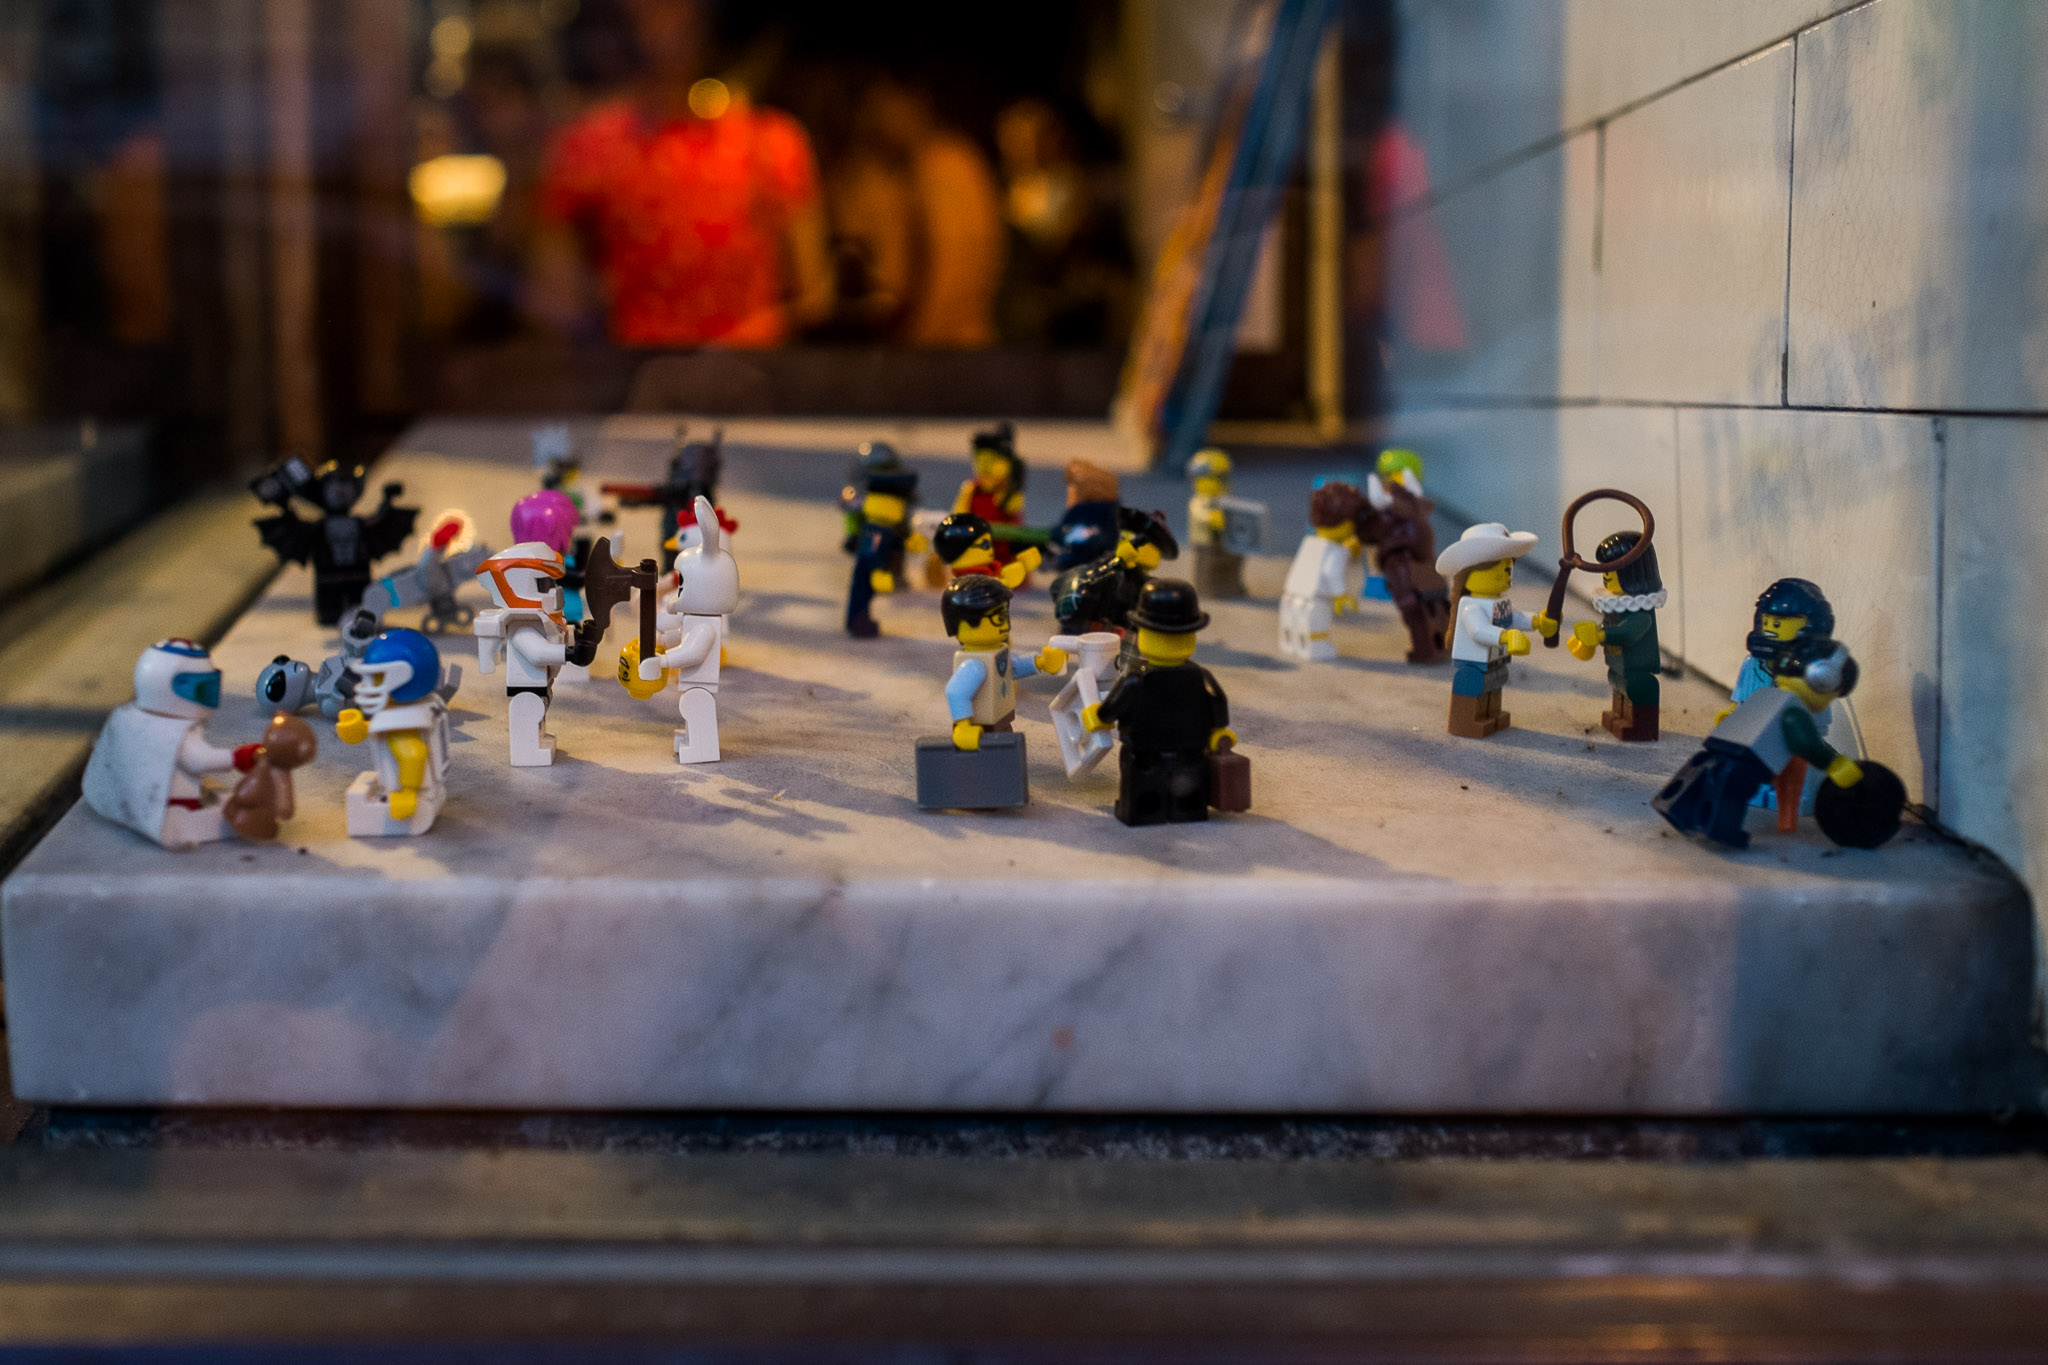 Any place with LEGO people in their front window has to be awesome!